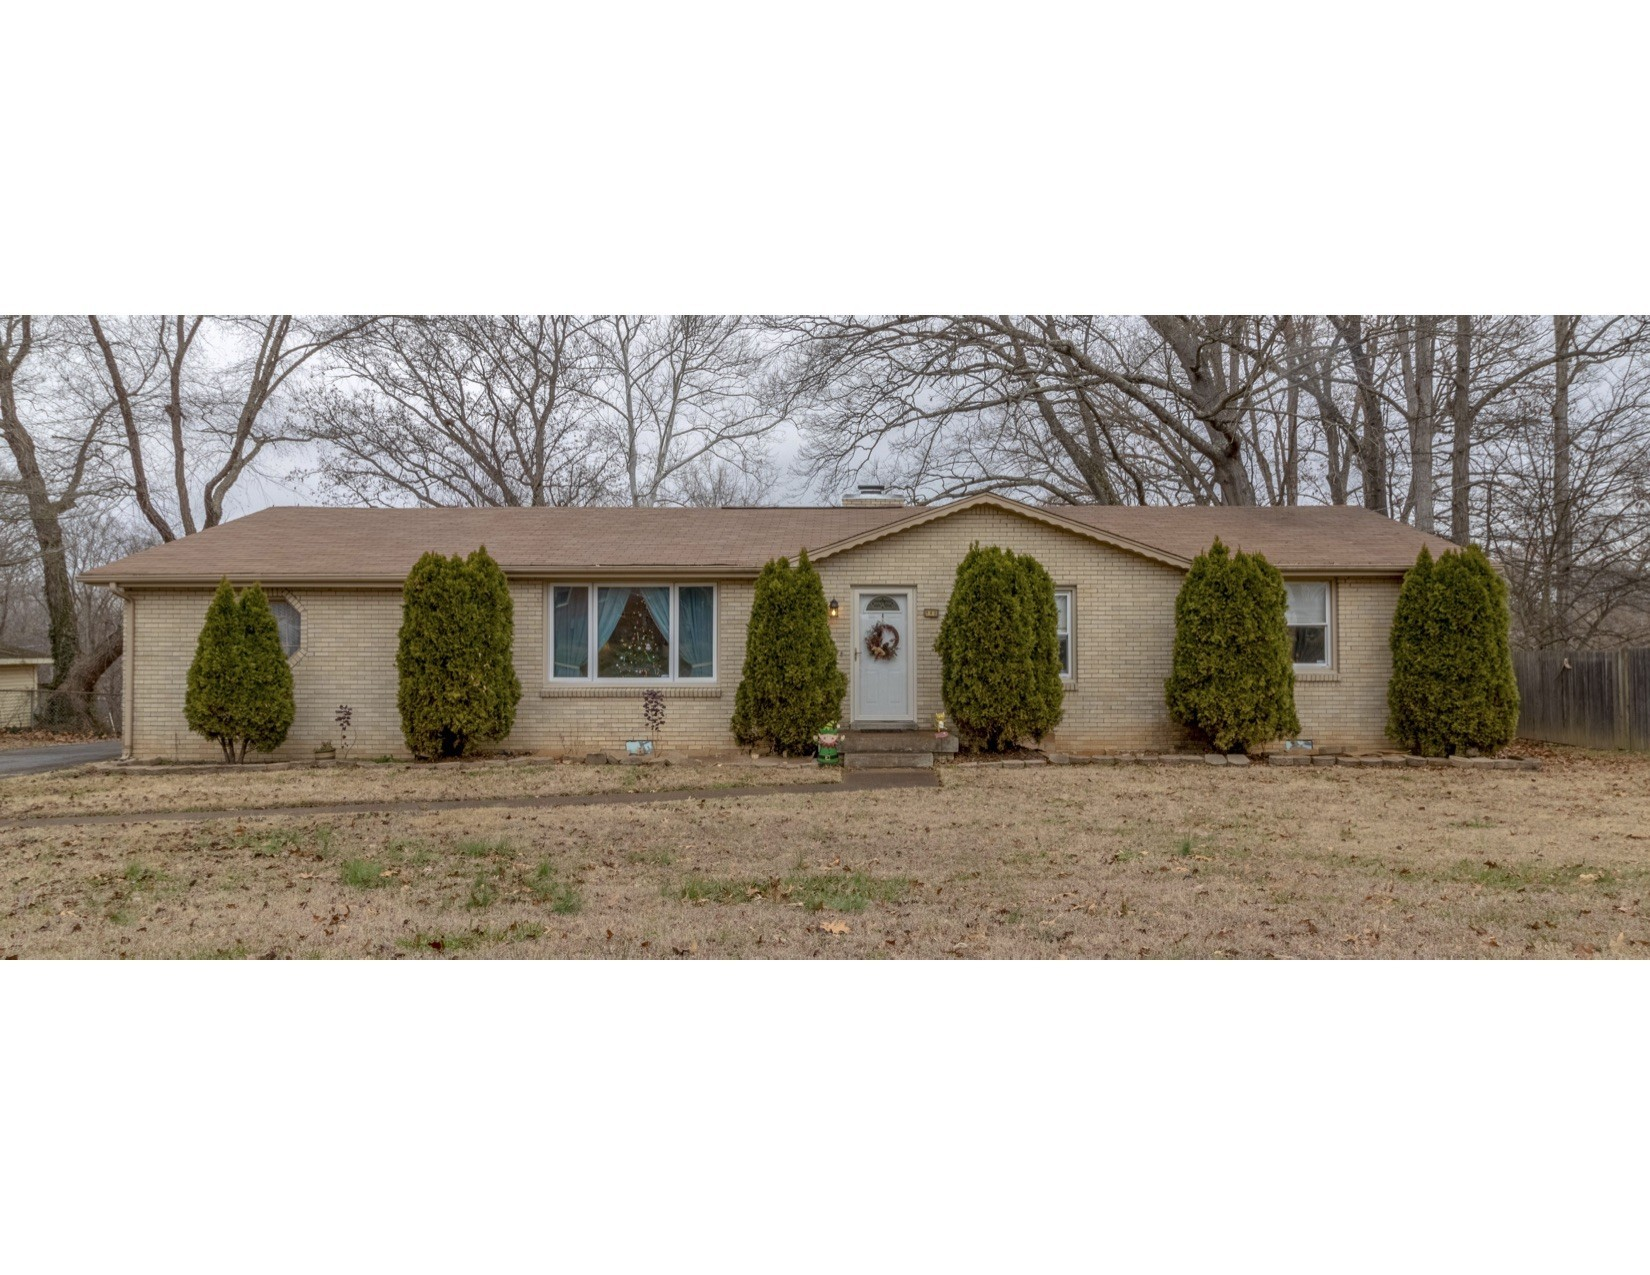 145 Saratoga Dr Property Photo - Clarksville, TN real estate listing